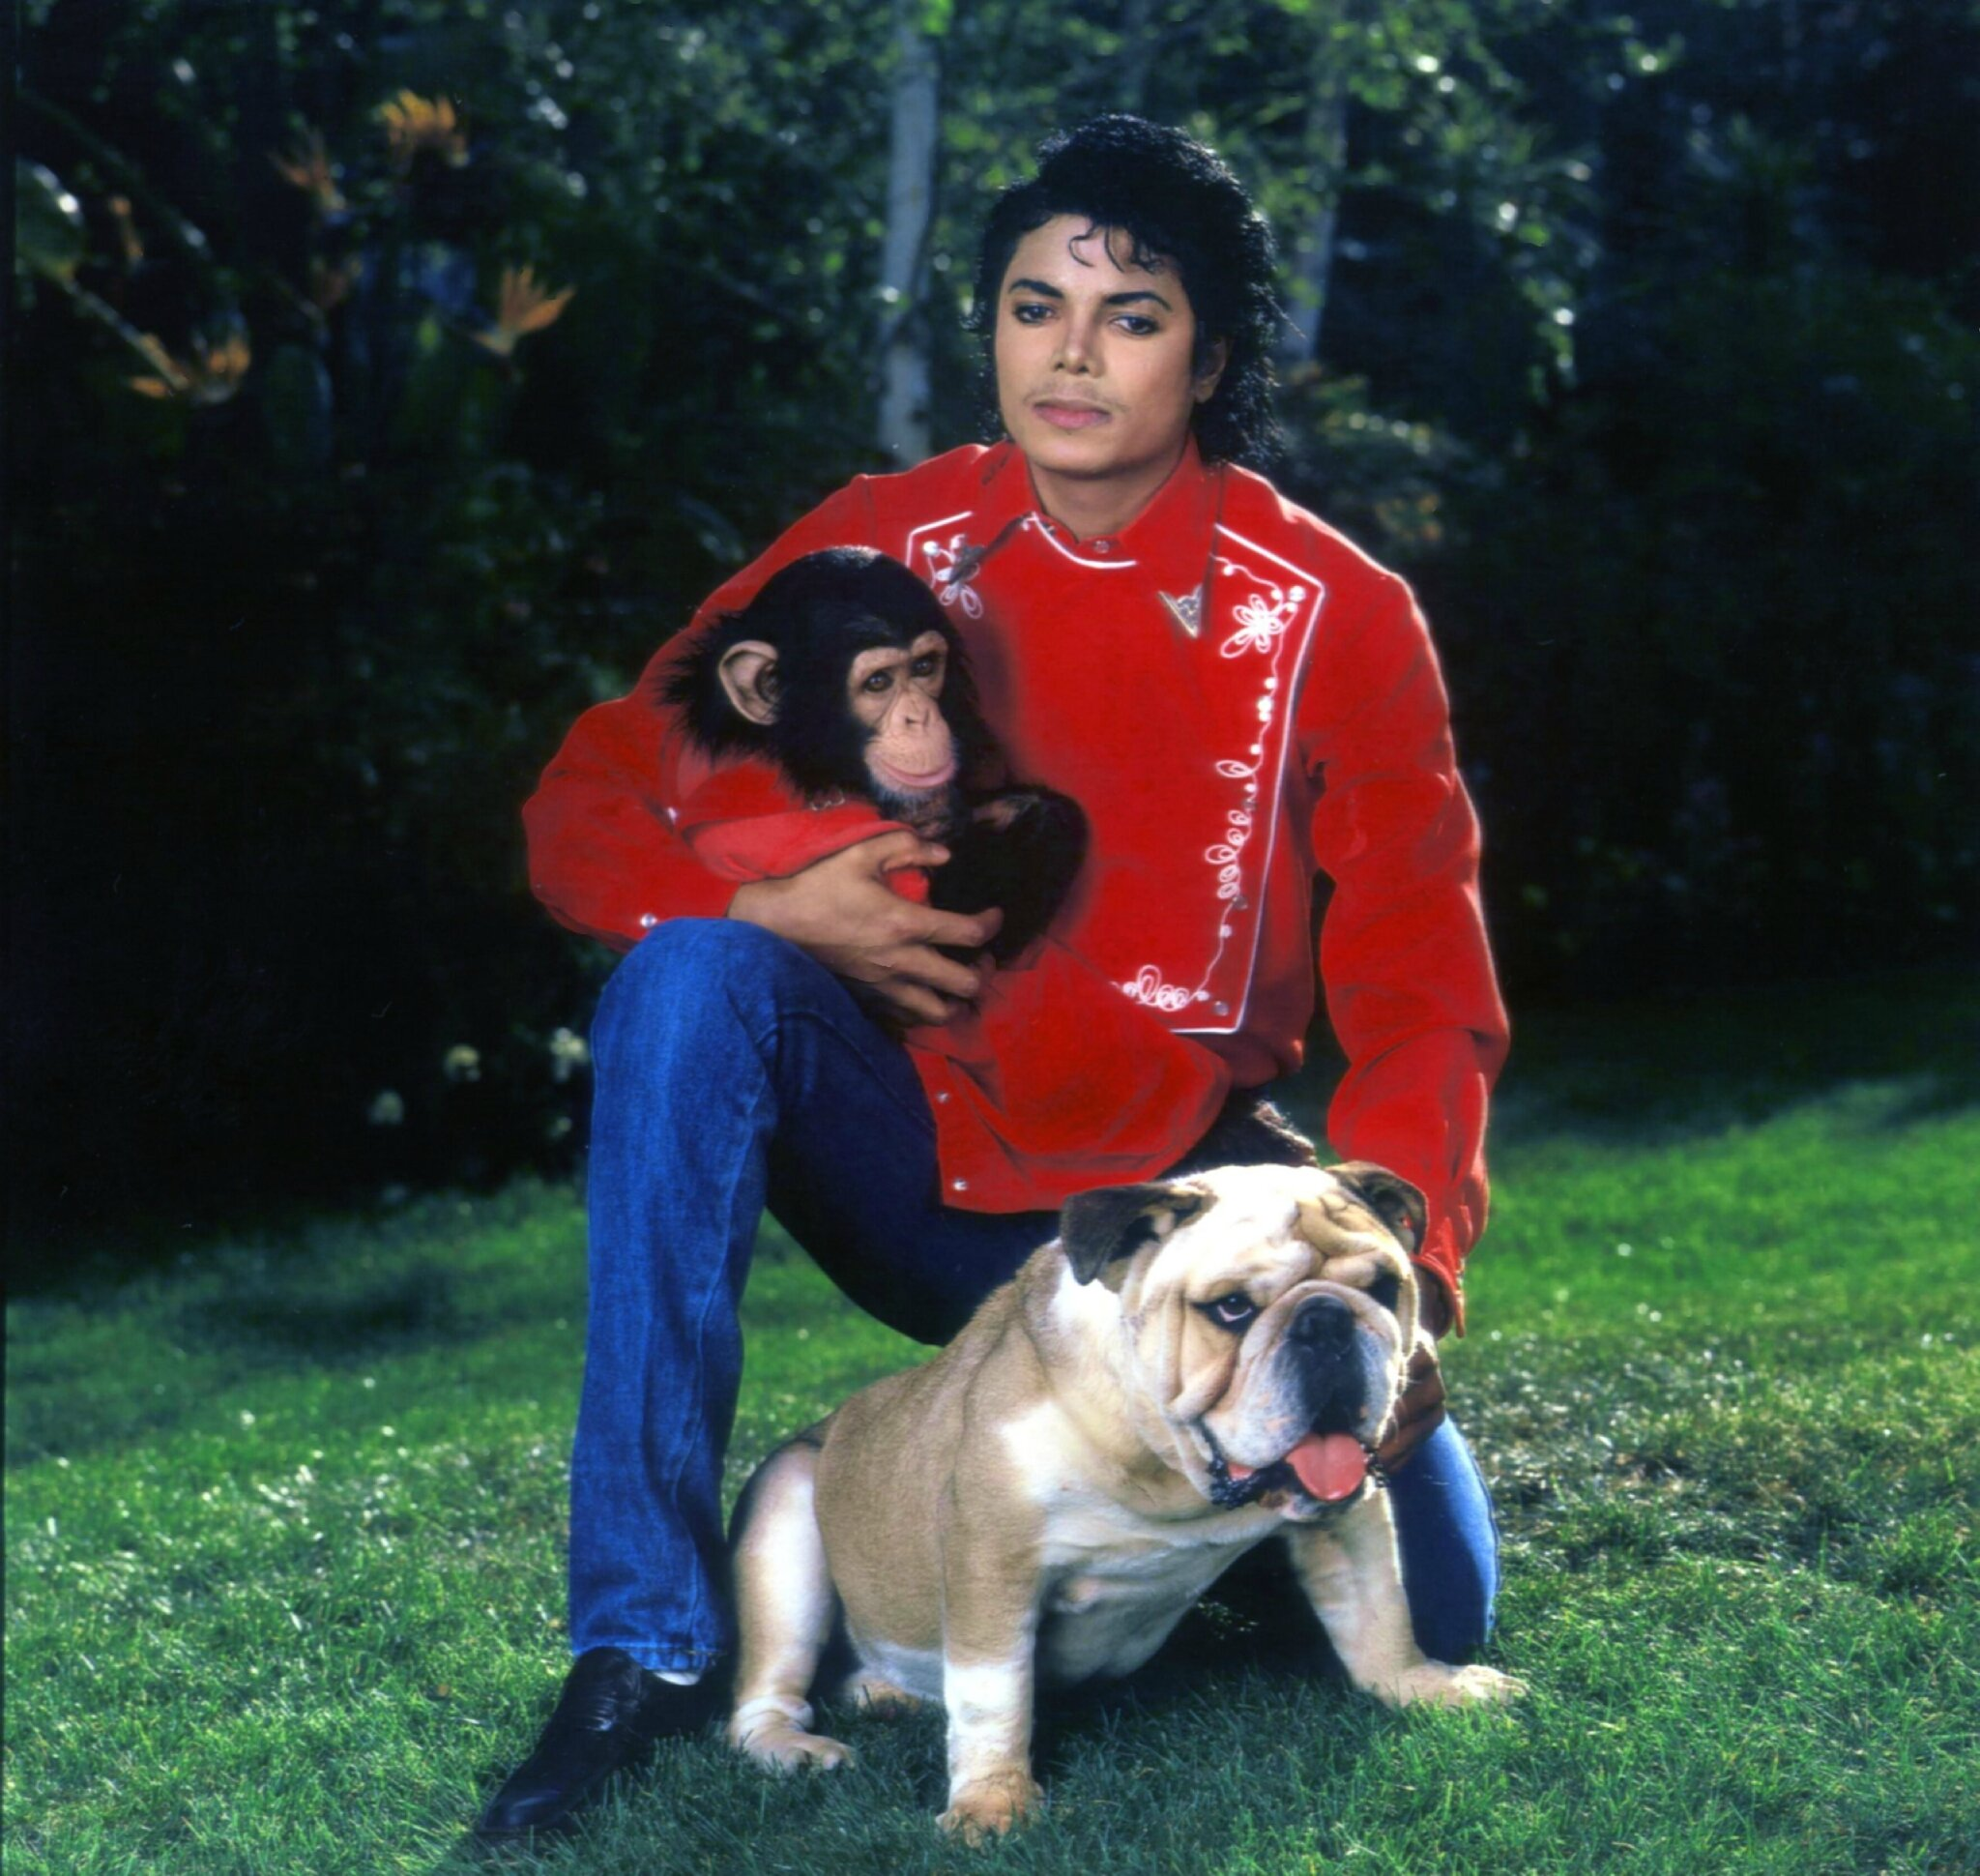 MJ-with-animals-michael-jackson-11640750-2560-2425